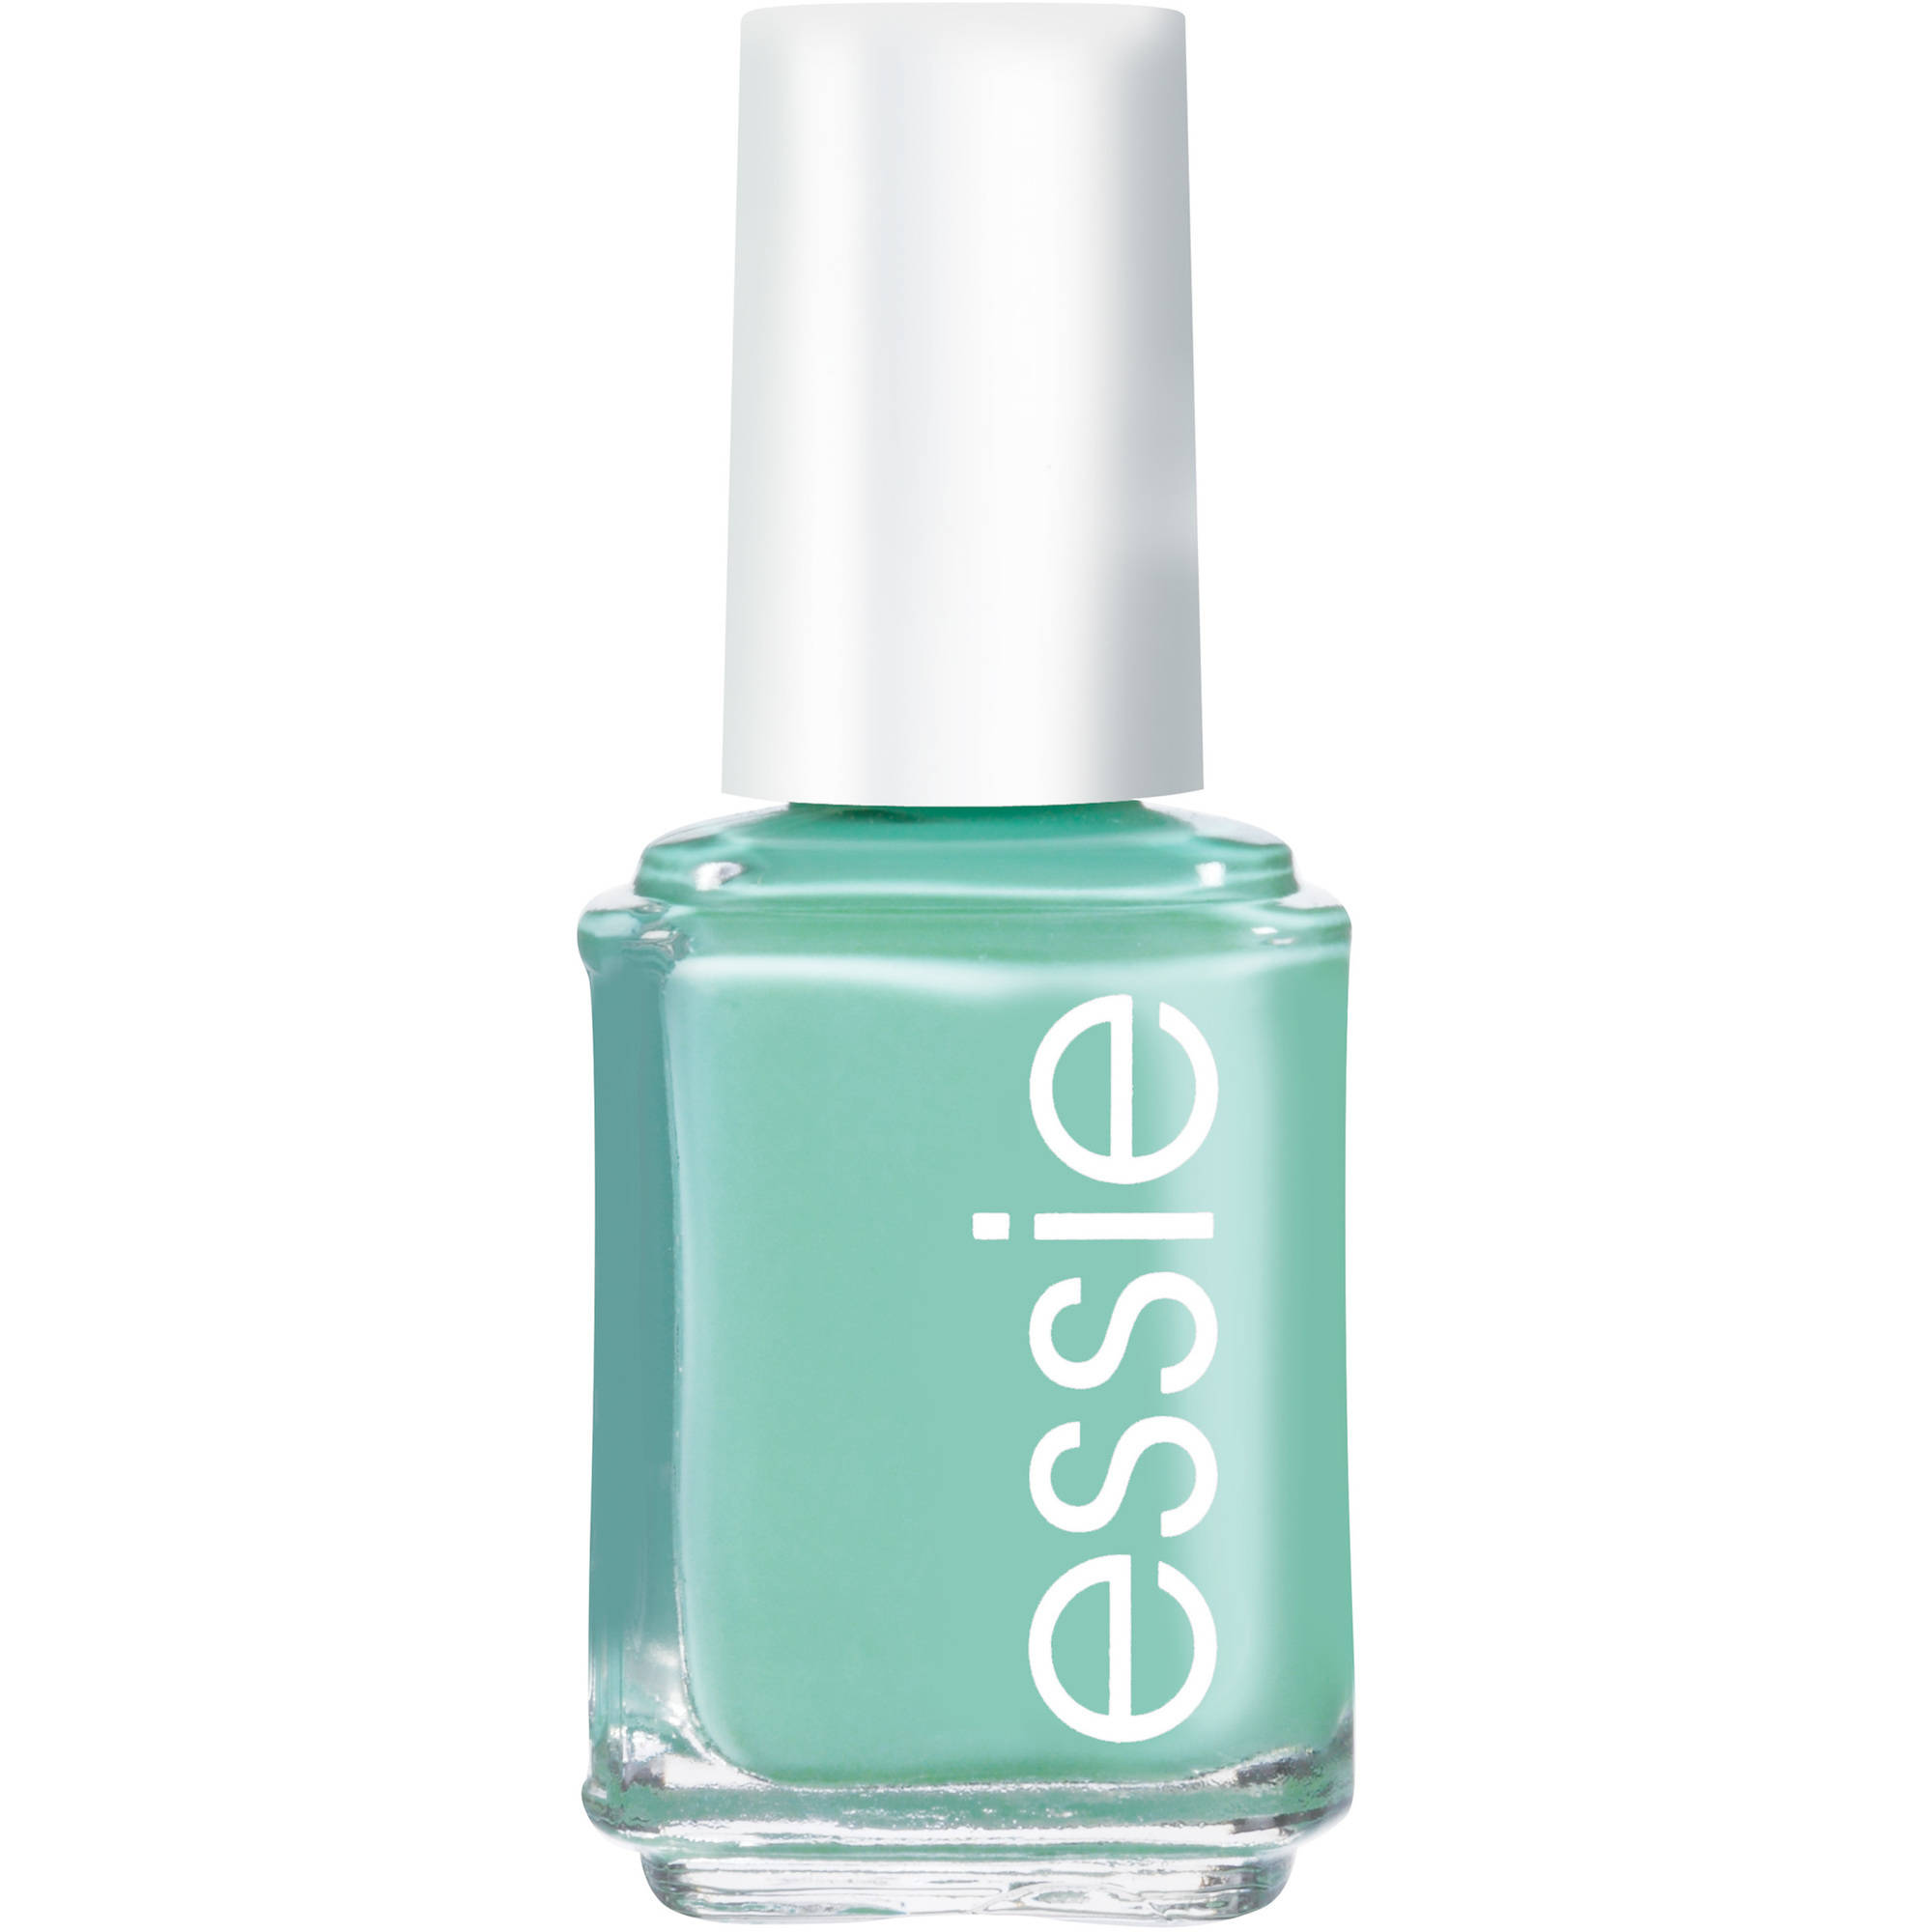 essie Nail Color, turquoise and caicos